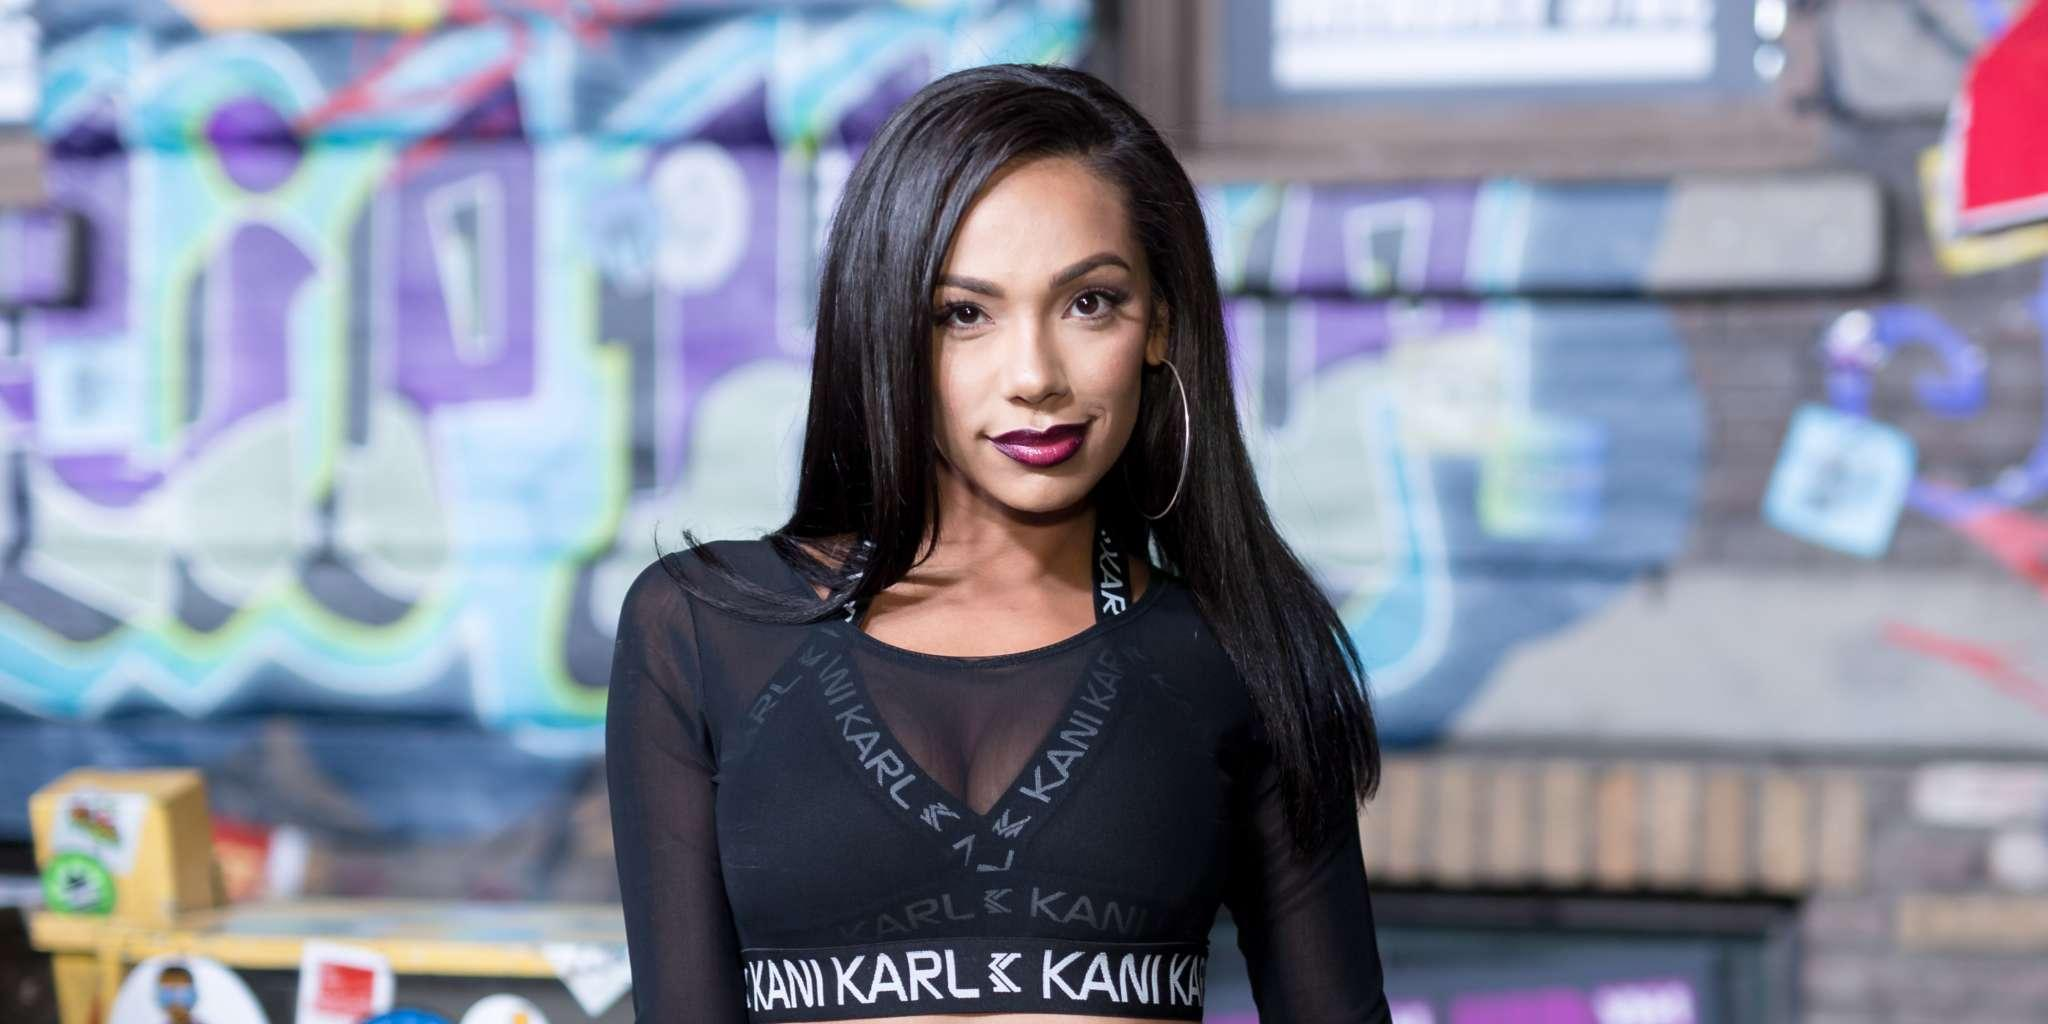 Erica Mena's Latest Post Triggers Criticism From Some Fans - See Her Video